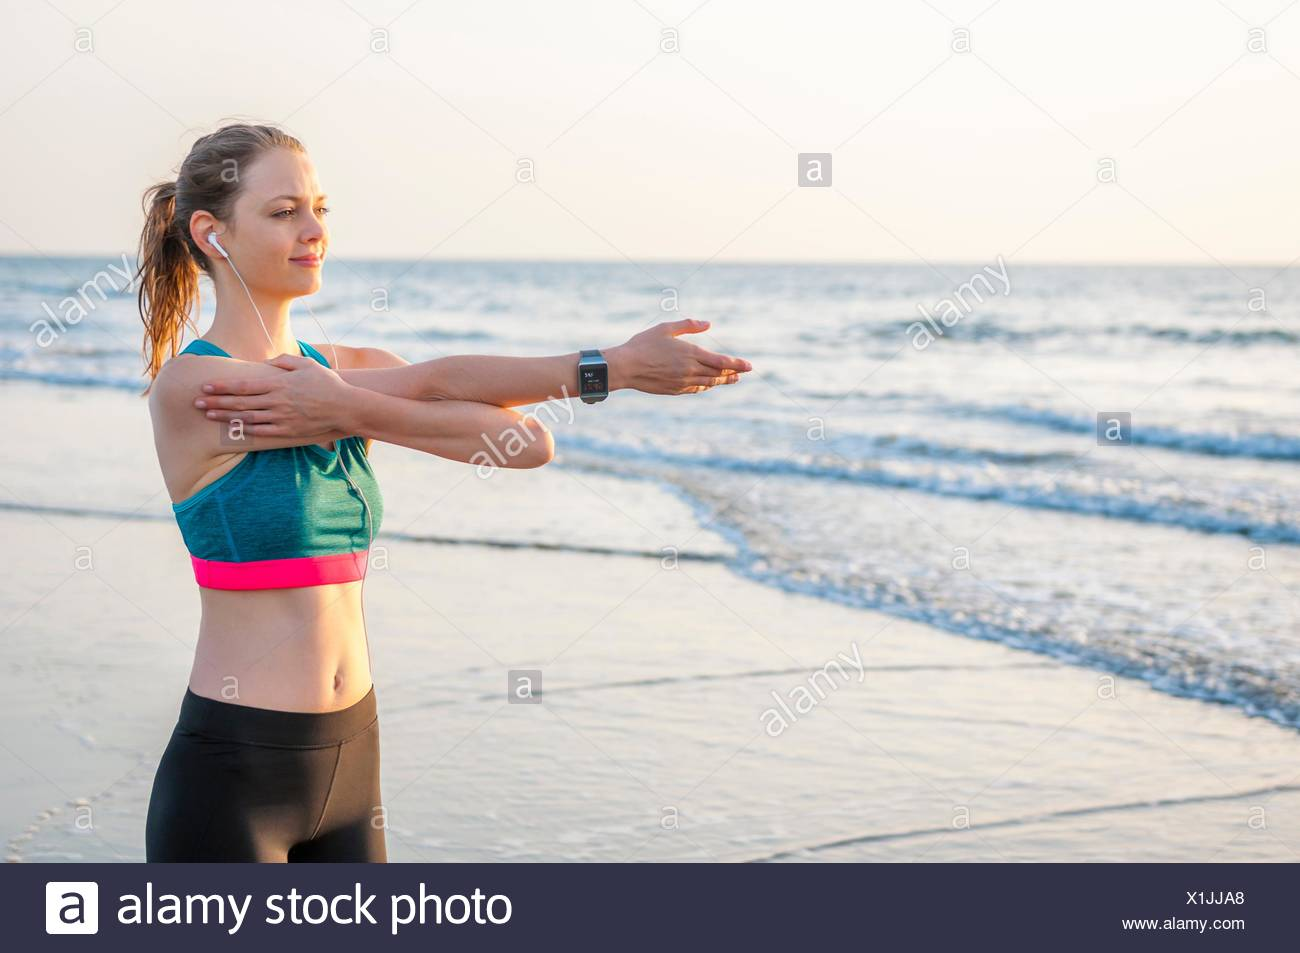 Mid adult woman by ocean wearing earbuds and crop top arm out stretching, looking away - Stock Image